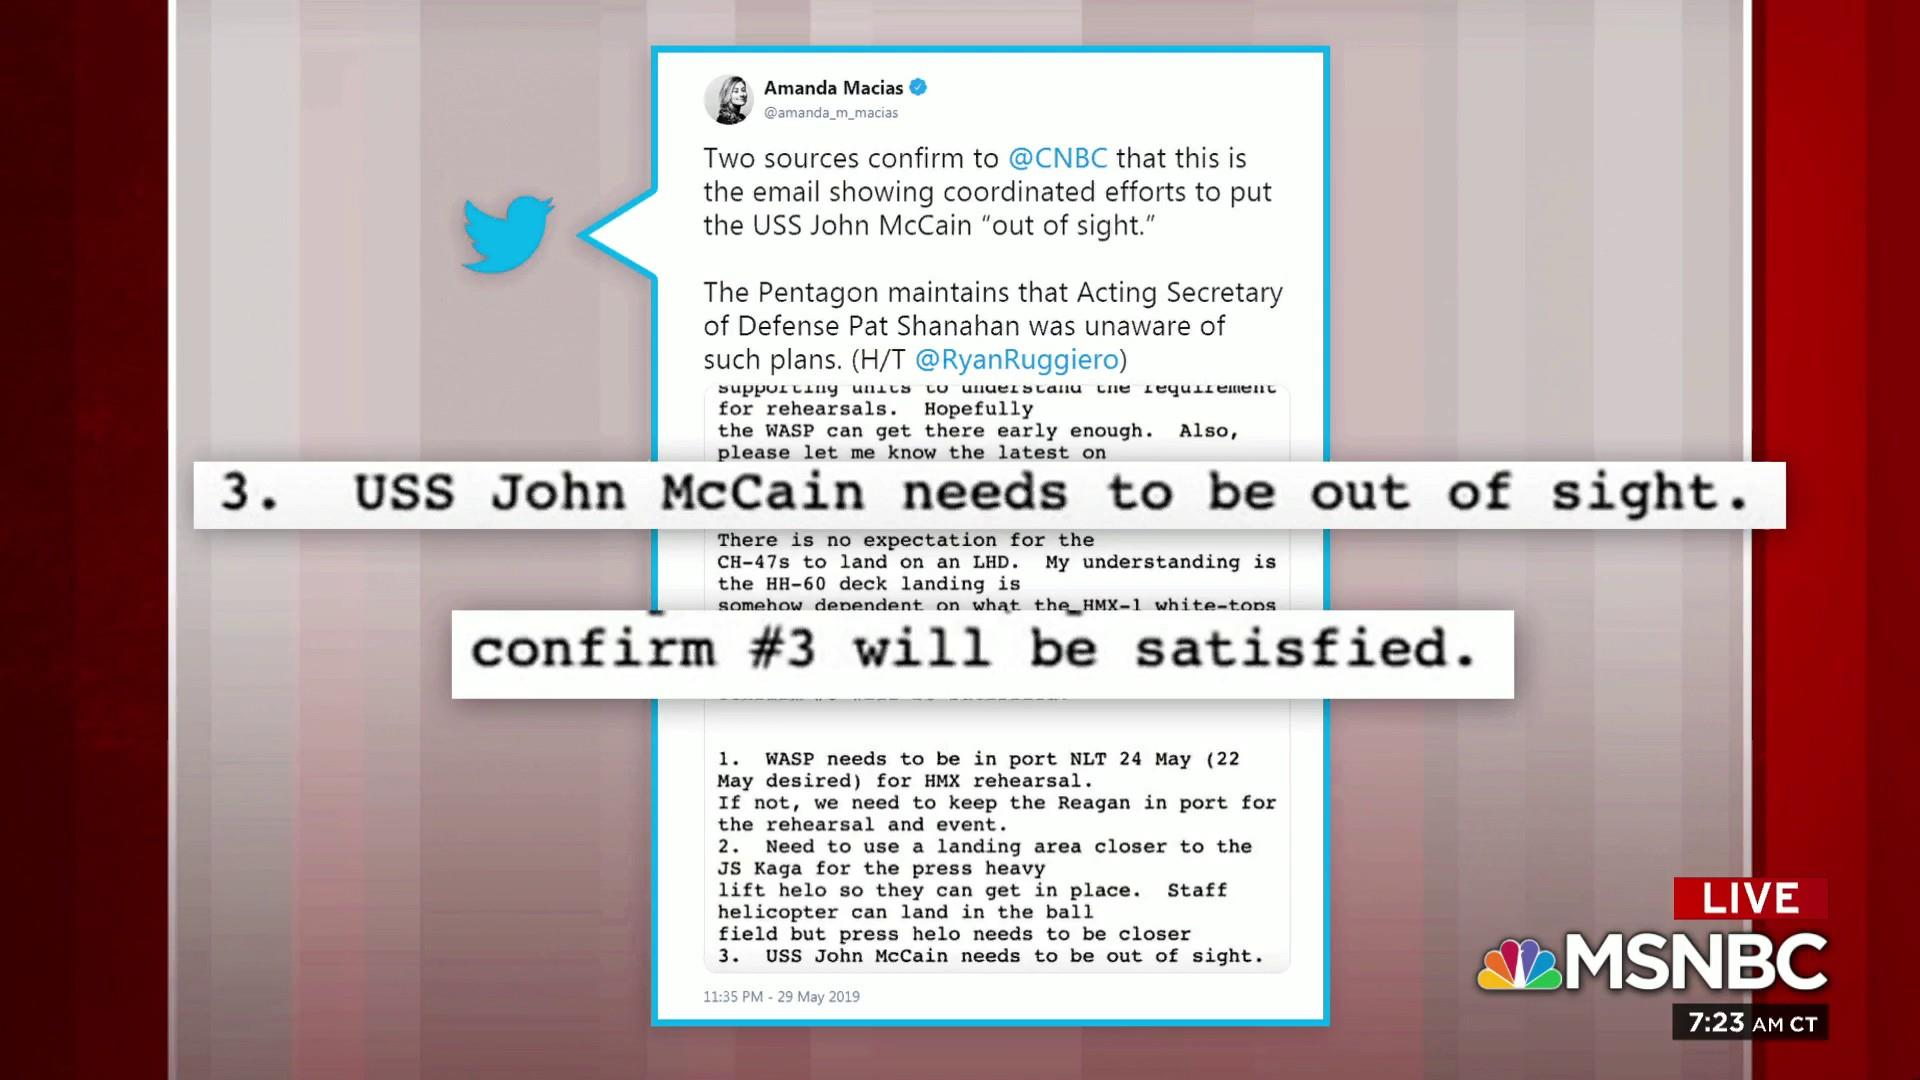 Emails shed light on efforts to put USS John McCain 'out of sight'